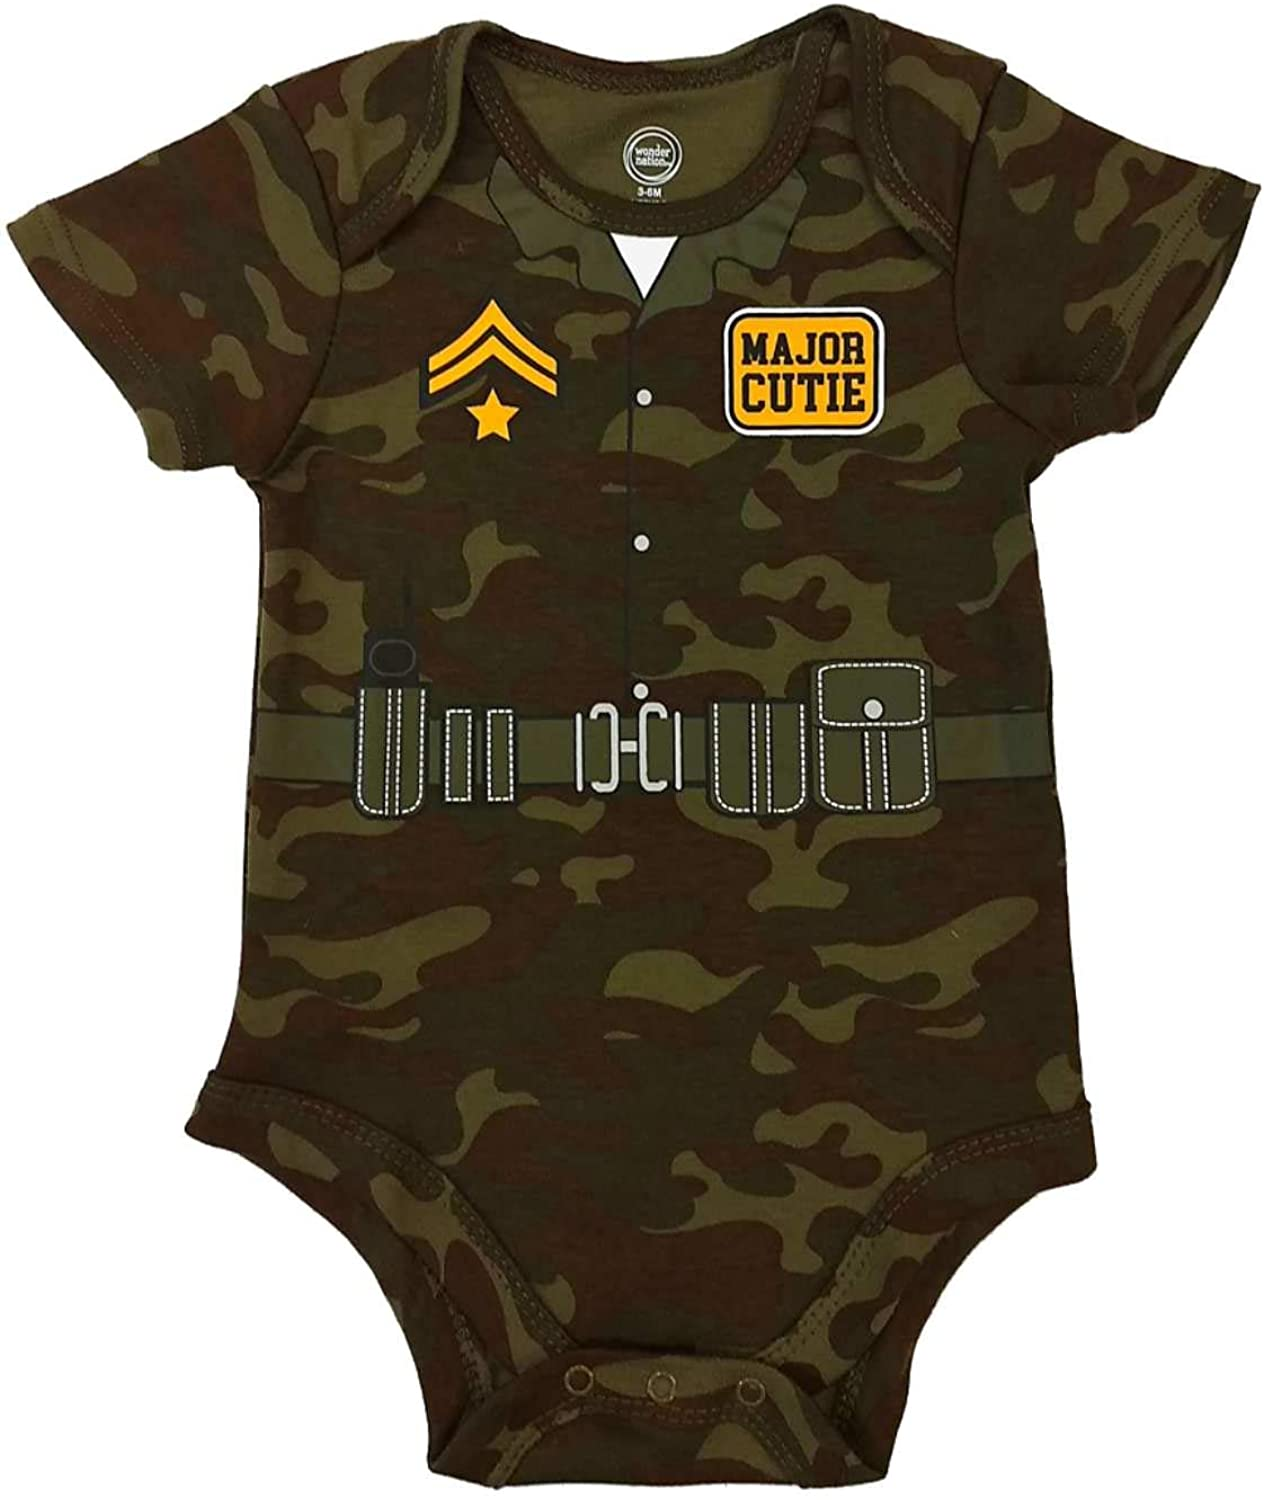 Infant Boys Green Camouflage Major Cutie Bodysuit Camo Soldier Baby Outfit